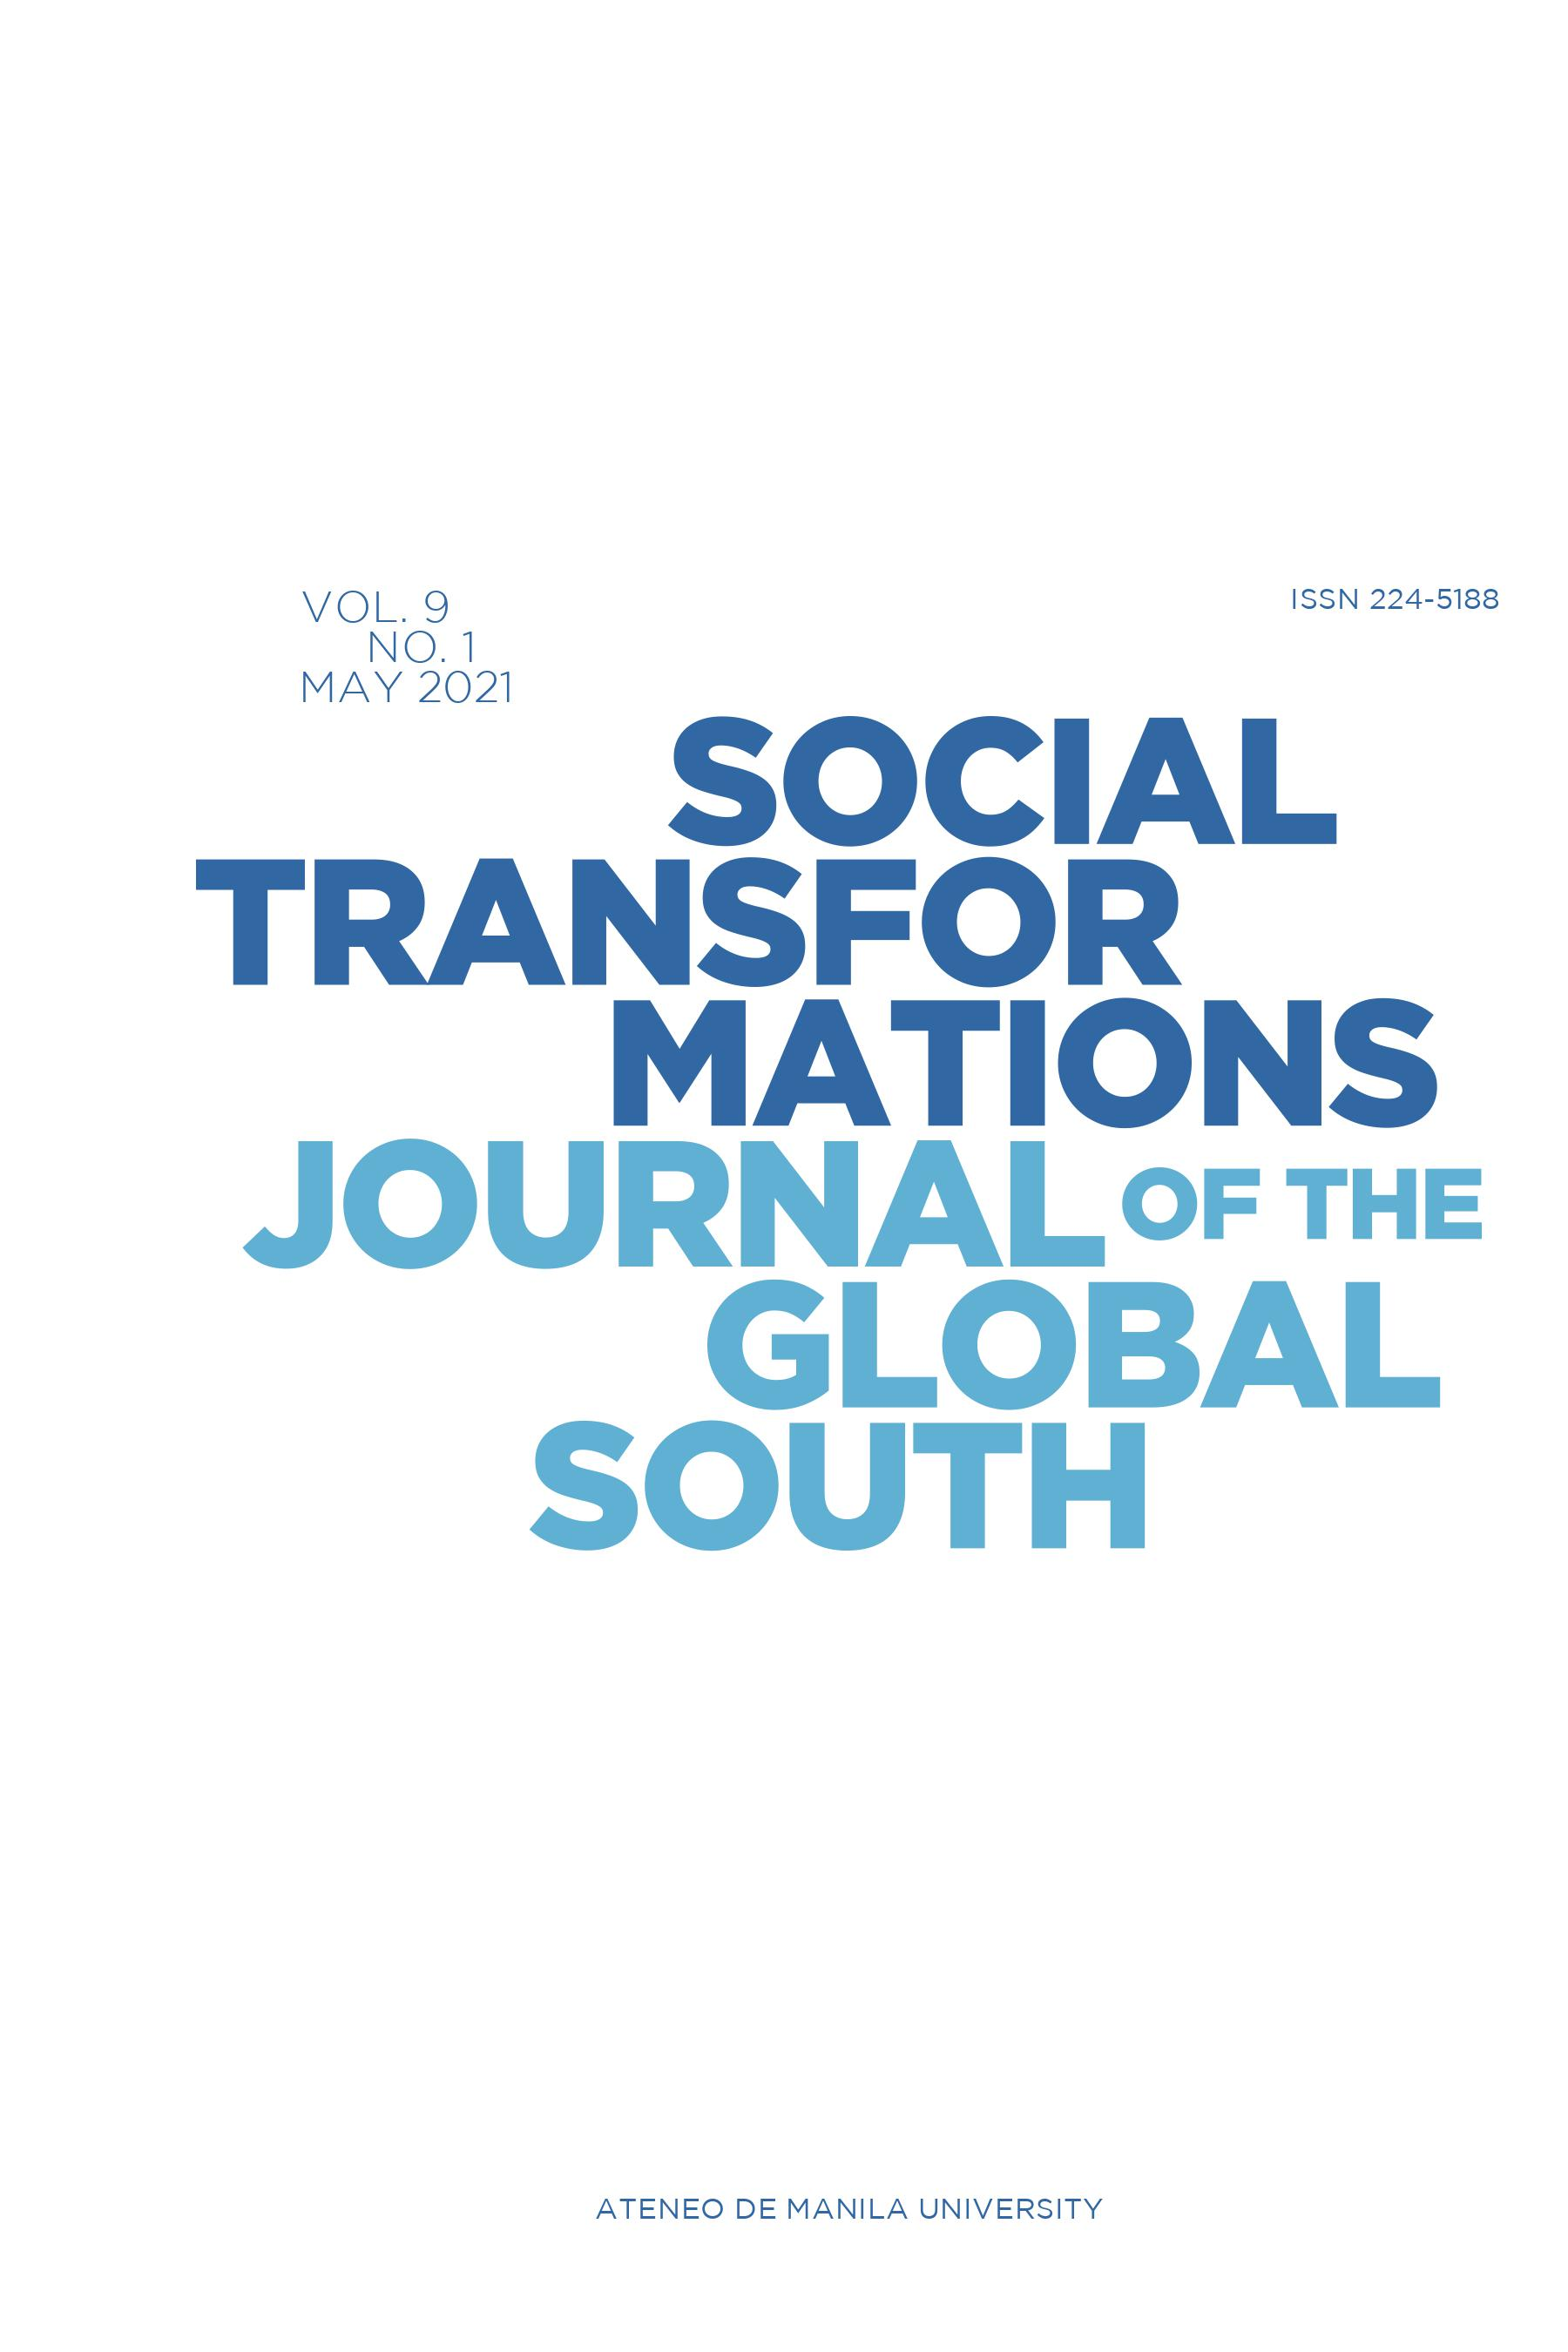 Social Transformations: Journal of the Global South Image